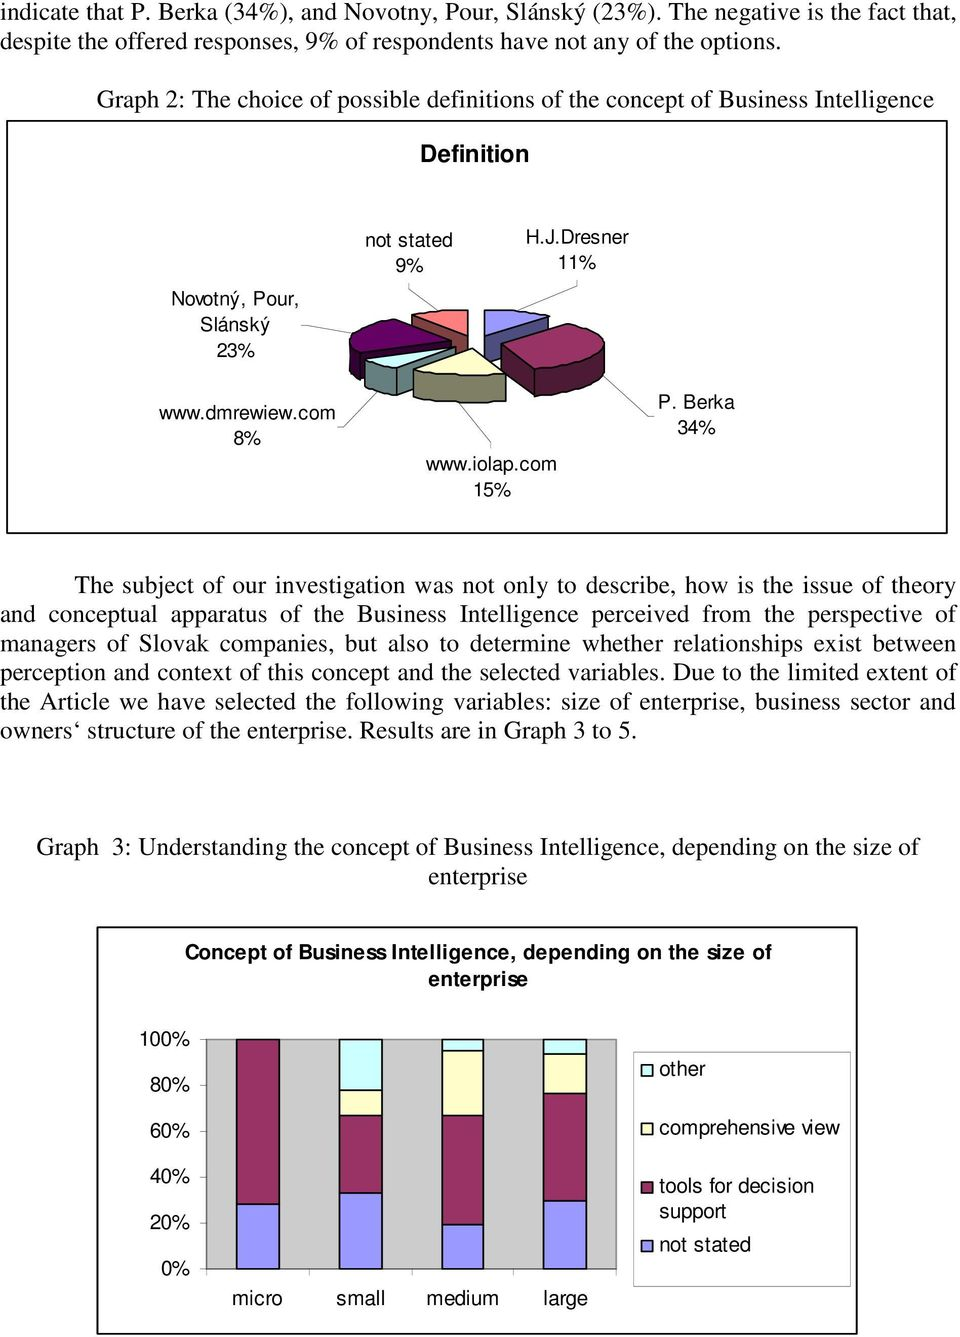 Berka 34% The subject of our investigation was not only to describe, how is the issue of theory and conceptual apparatus of the Business Intelligence perceived from the perspective of managers of